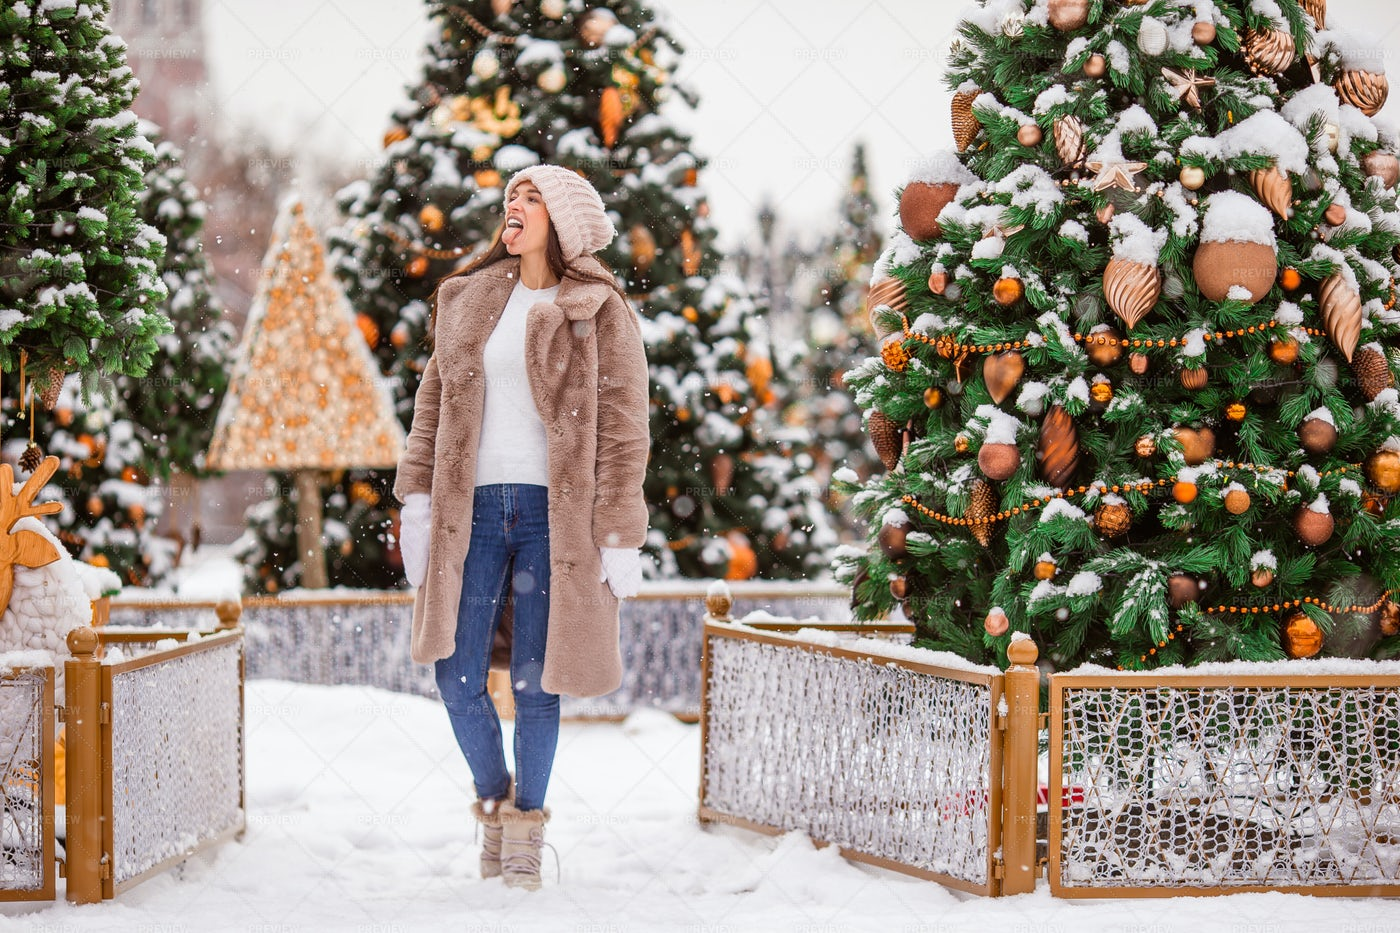 Catching Snowflakes On Tongue: Stock Photos